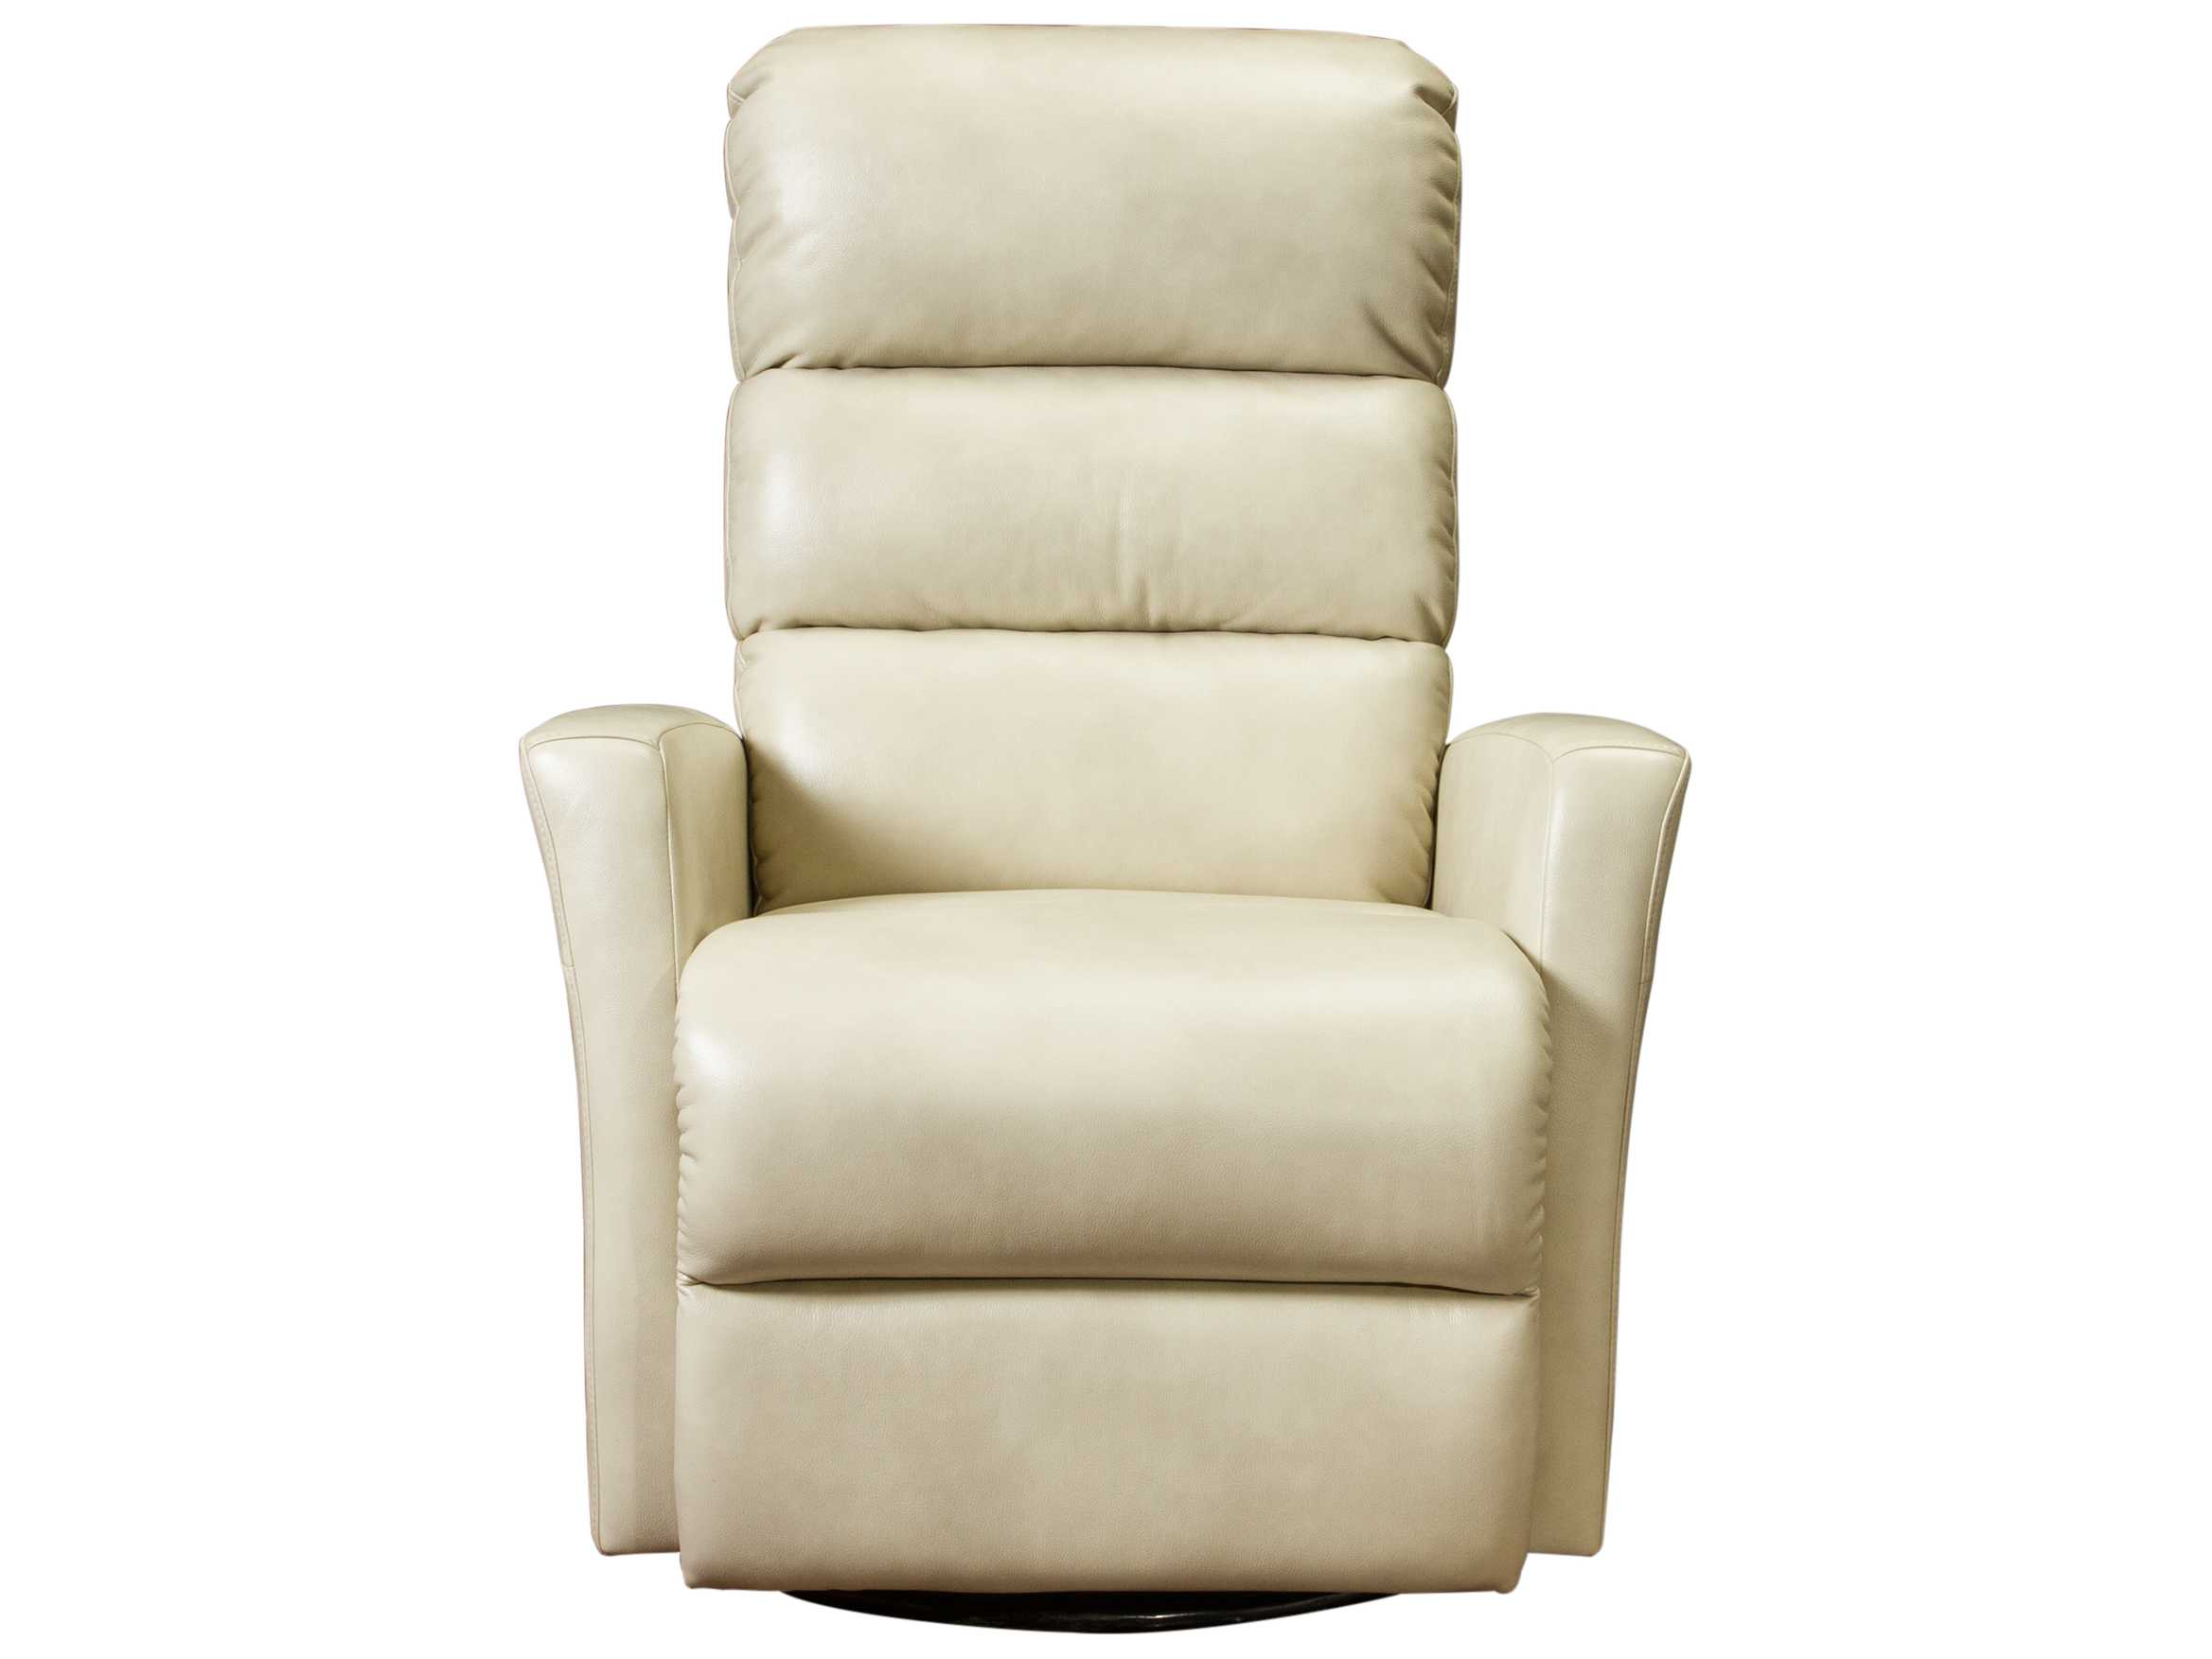 Barcalounger Basics Collection Khloe Swivel Glider